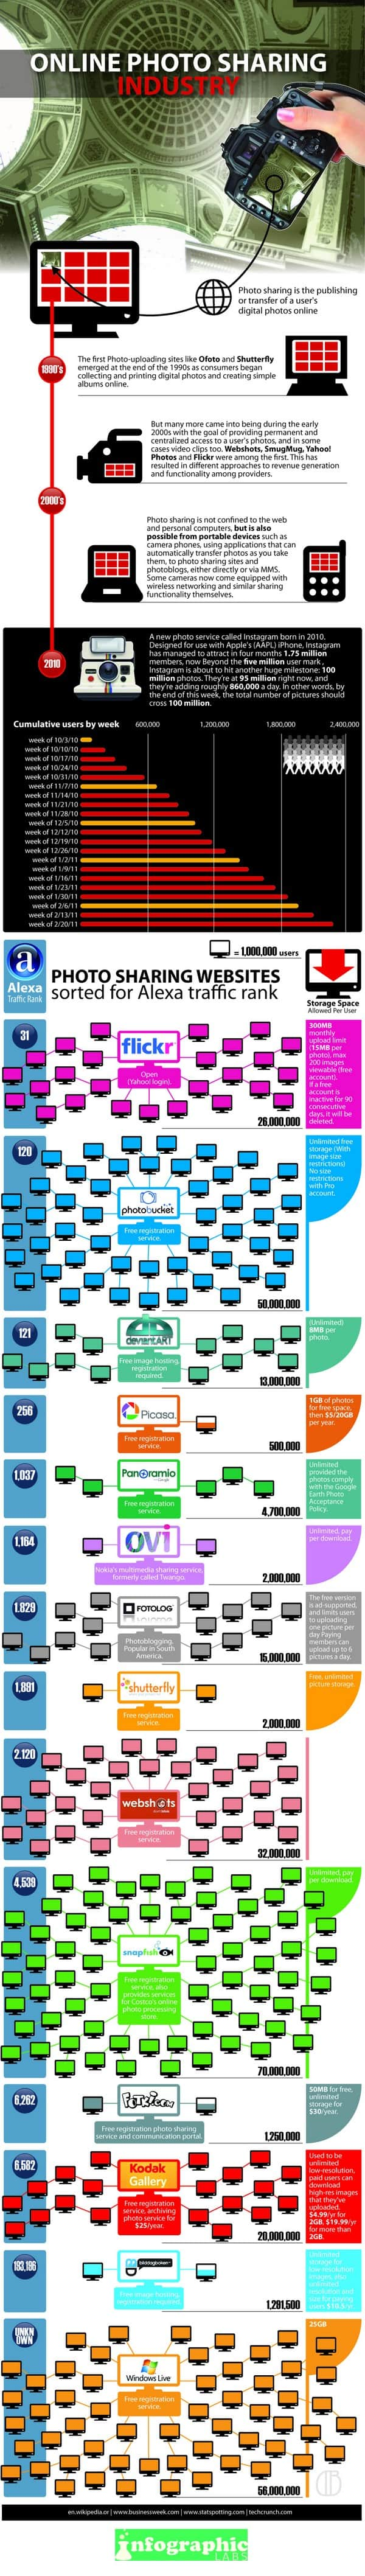 Online Photo Sharing Comparing The Services Infographic